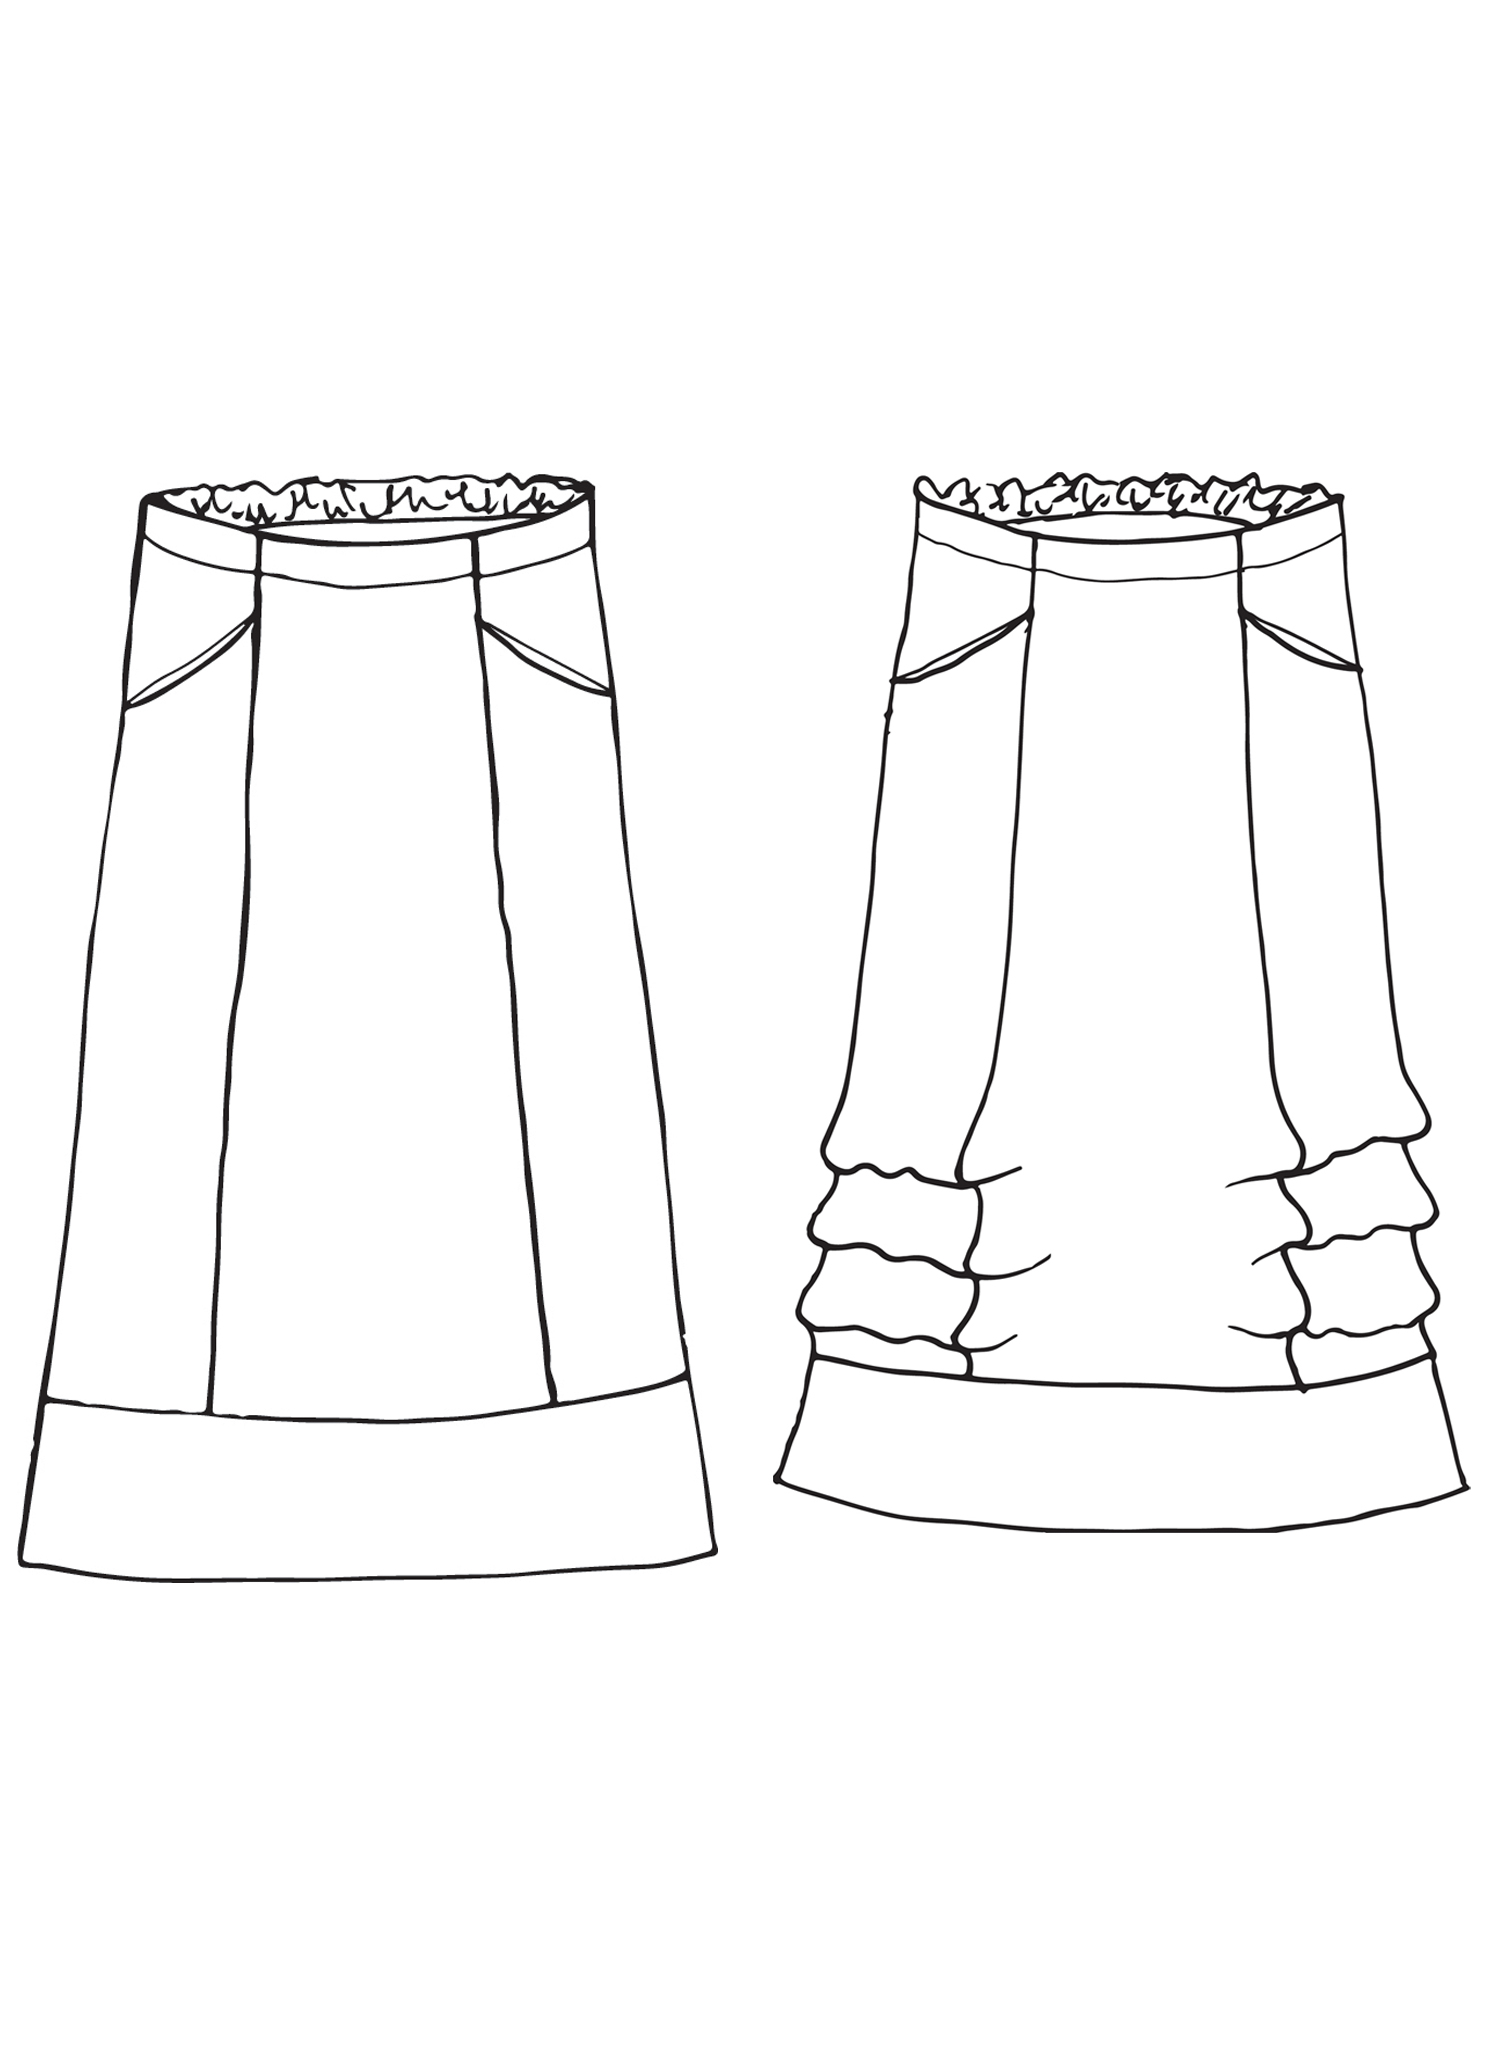 Multi-Facet Skirt sketch image